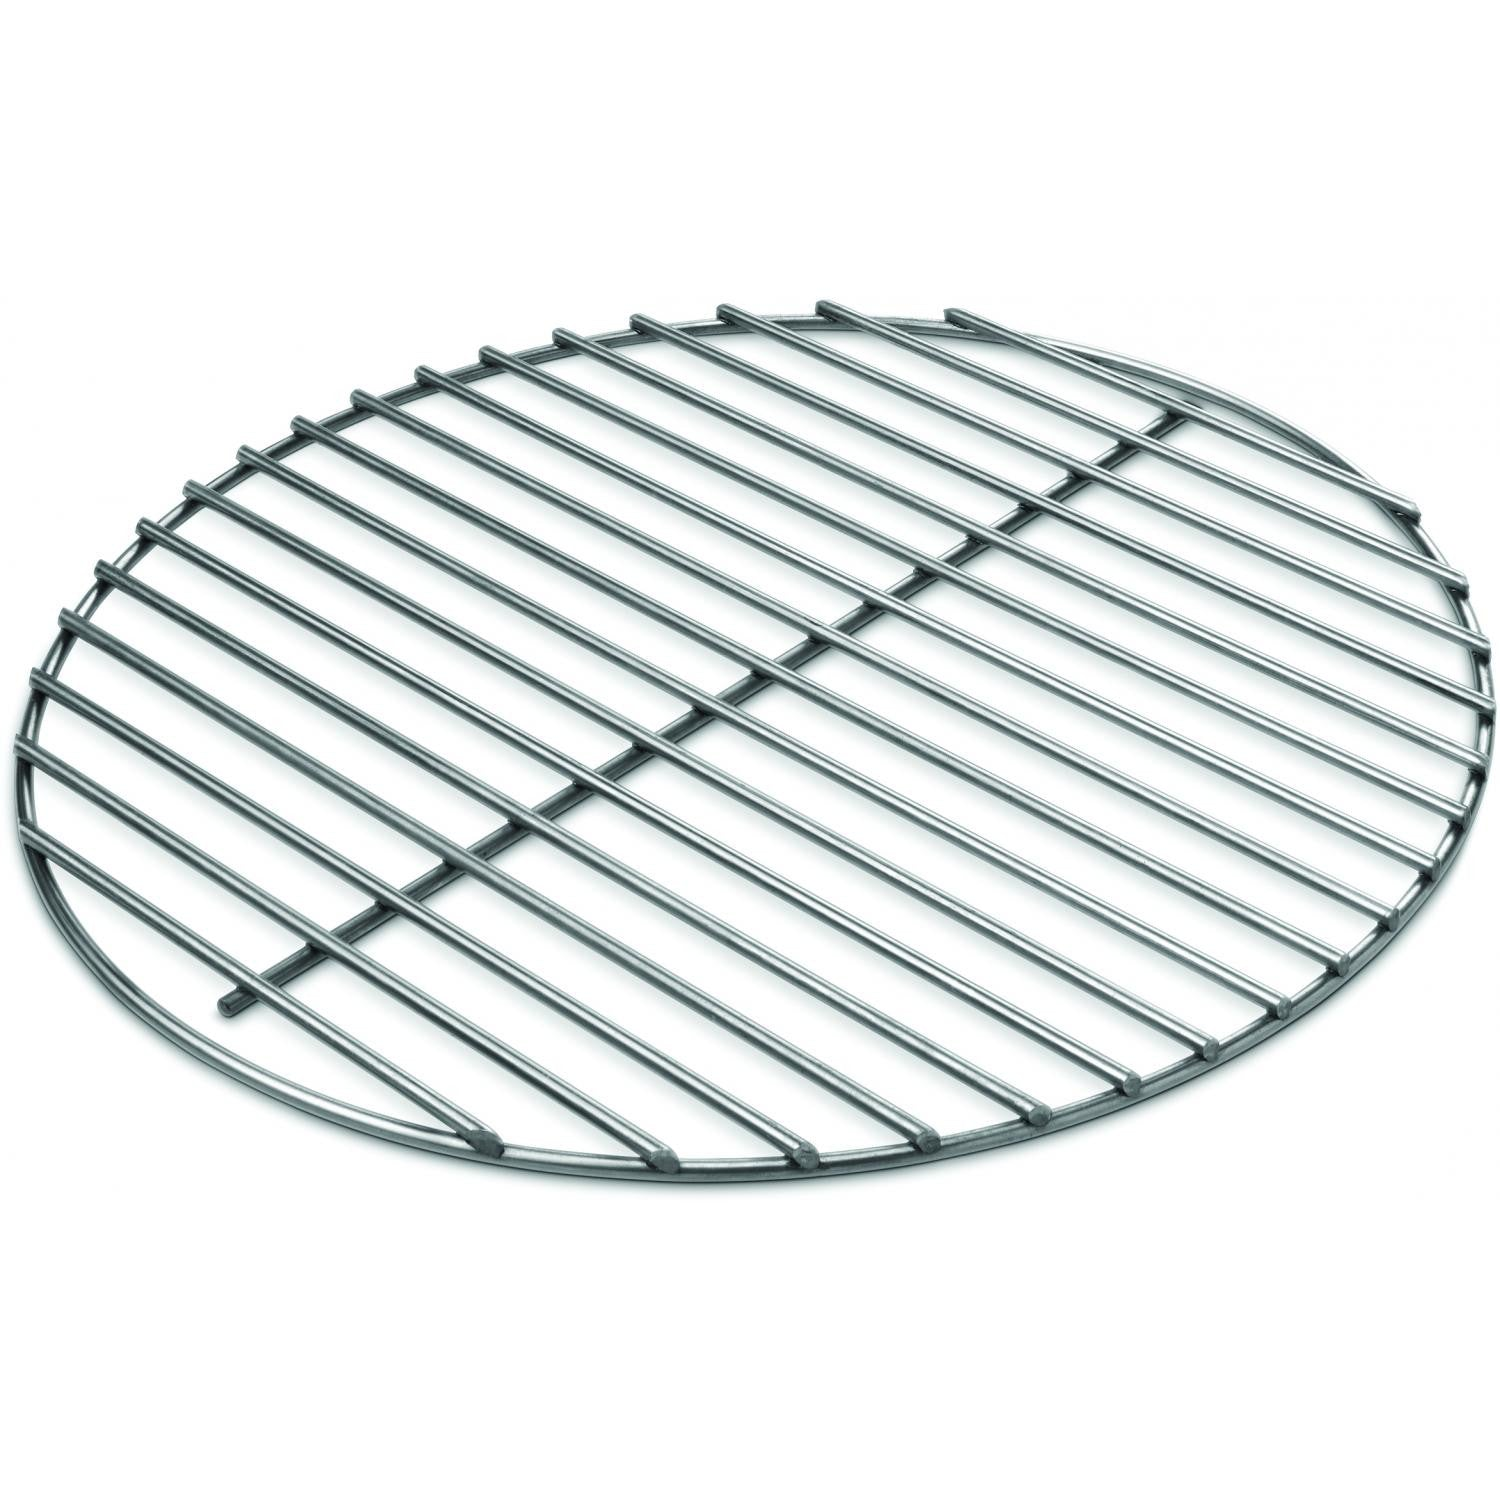 Weber 7440 Charcoal Cooking Grate For 18-Inch Kettle Grills